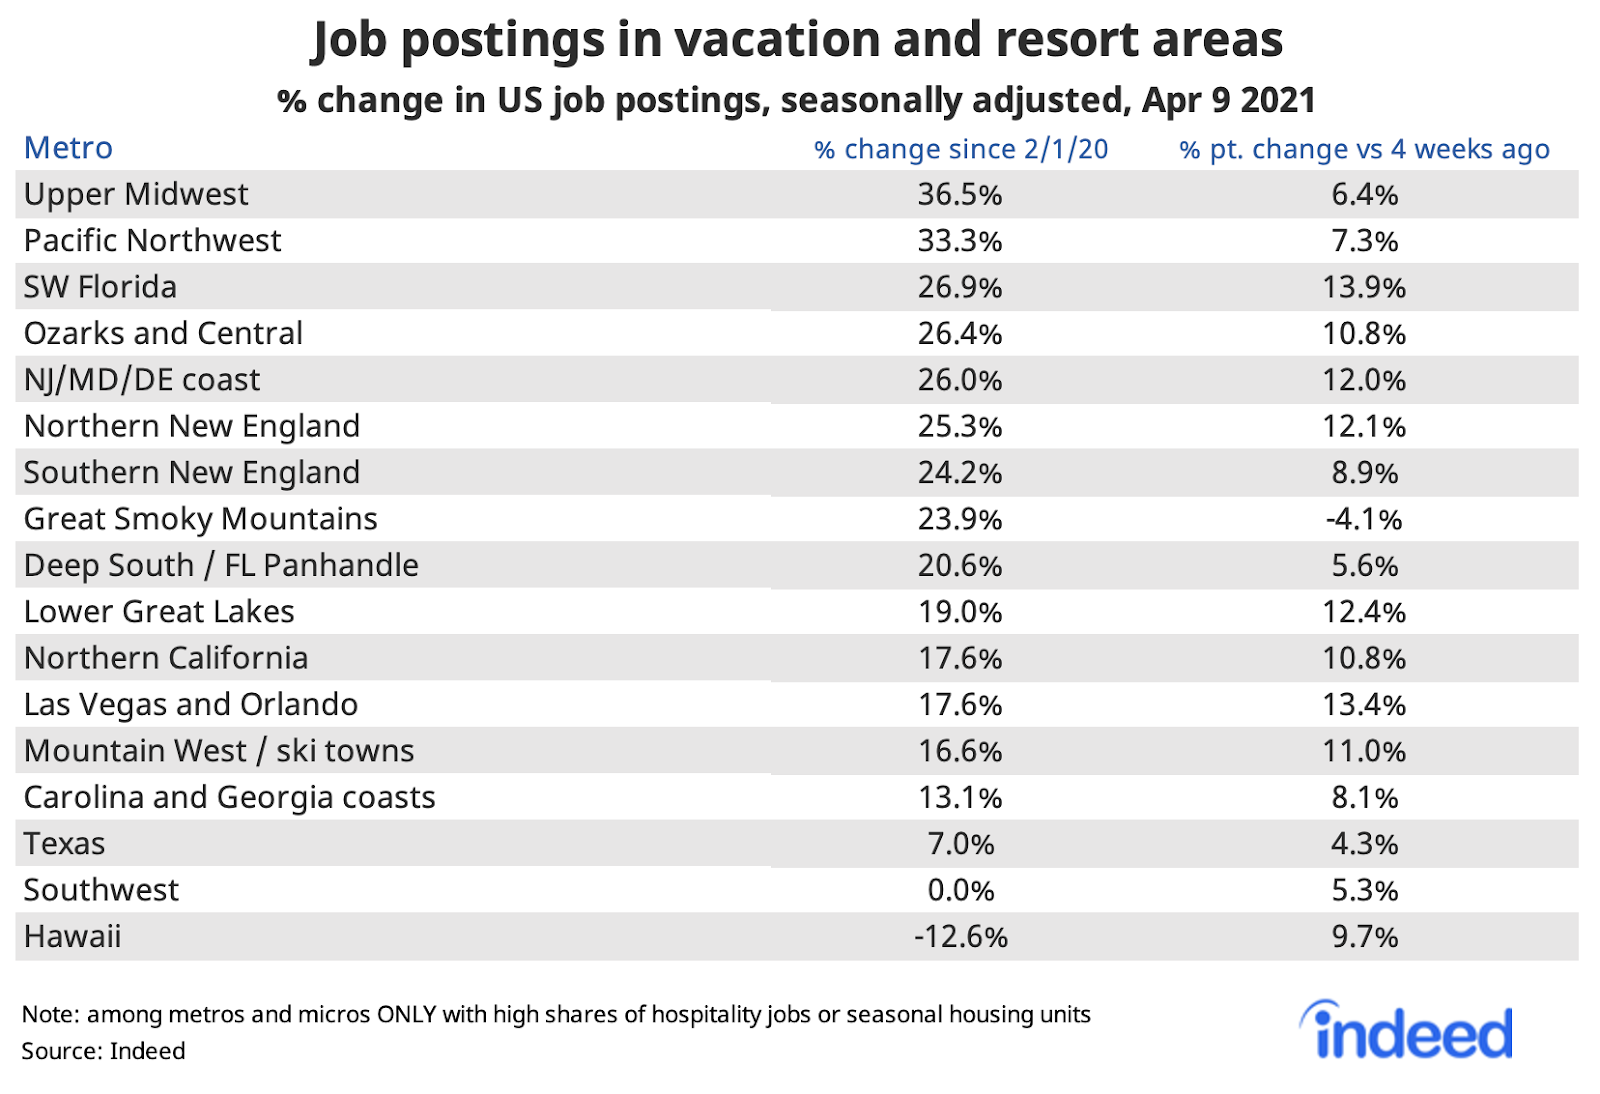 Table showing job postings in vacation and resort areas